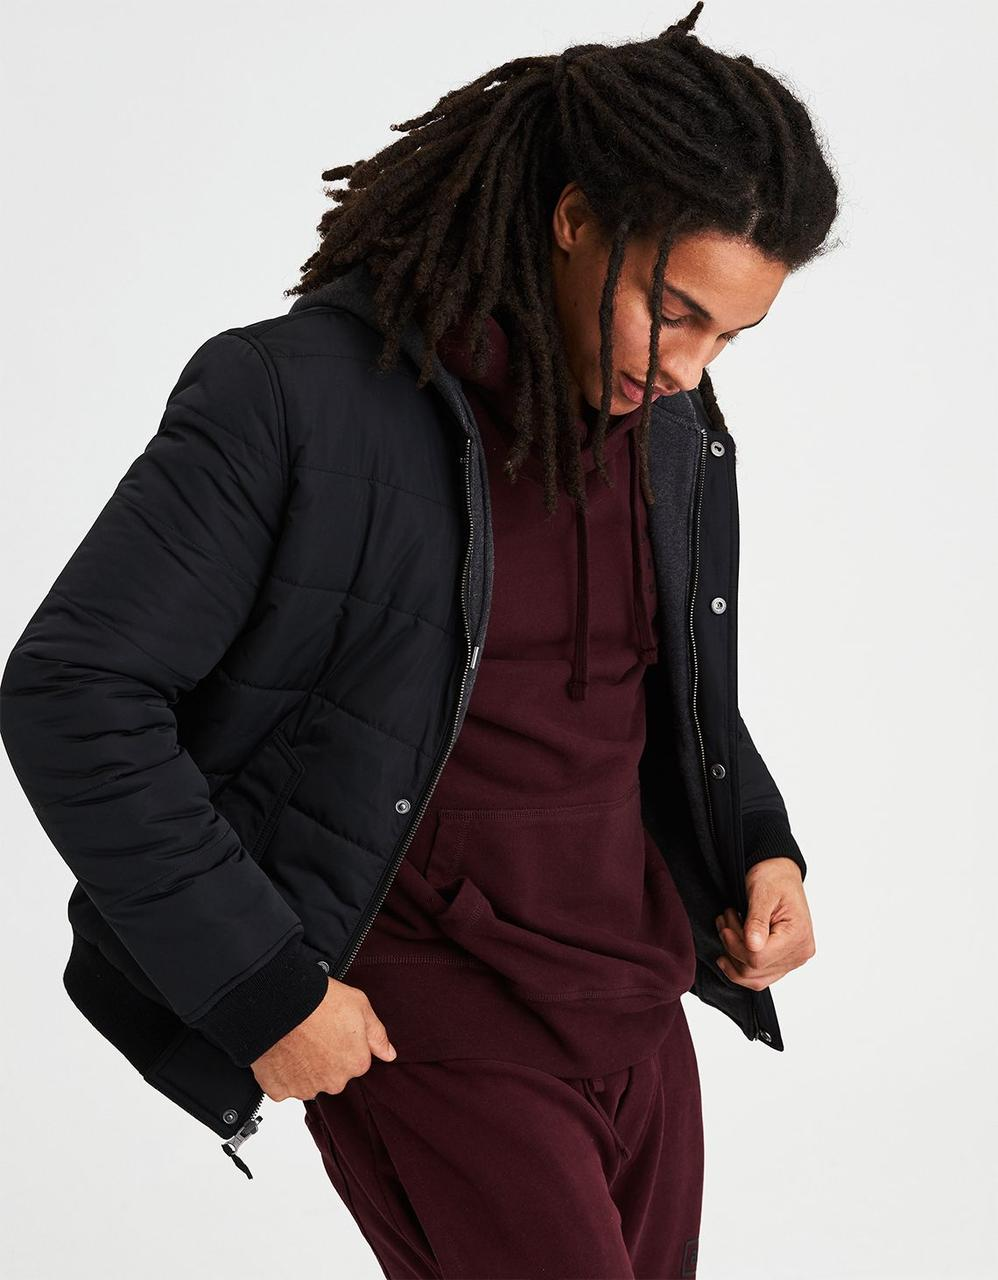 b2ae6b4d0 American Eagle Jackets, AE REVERSIBLE HOODED BOMBER JACKET for Men ...